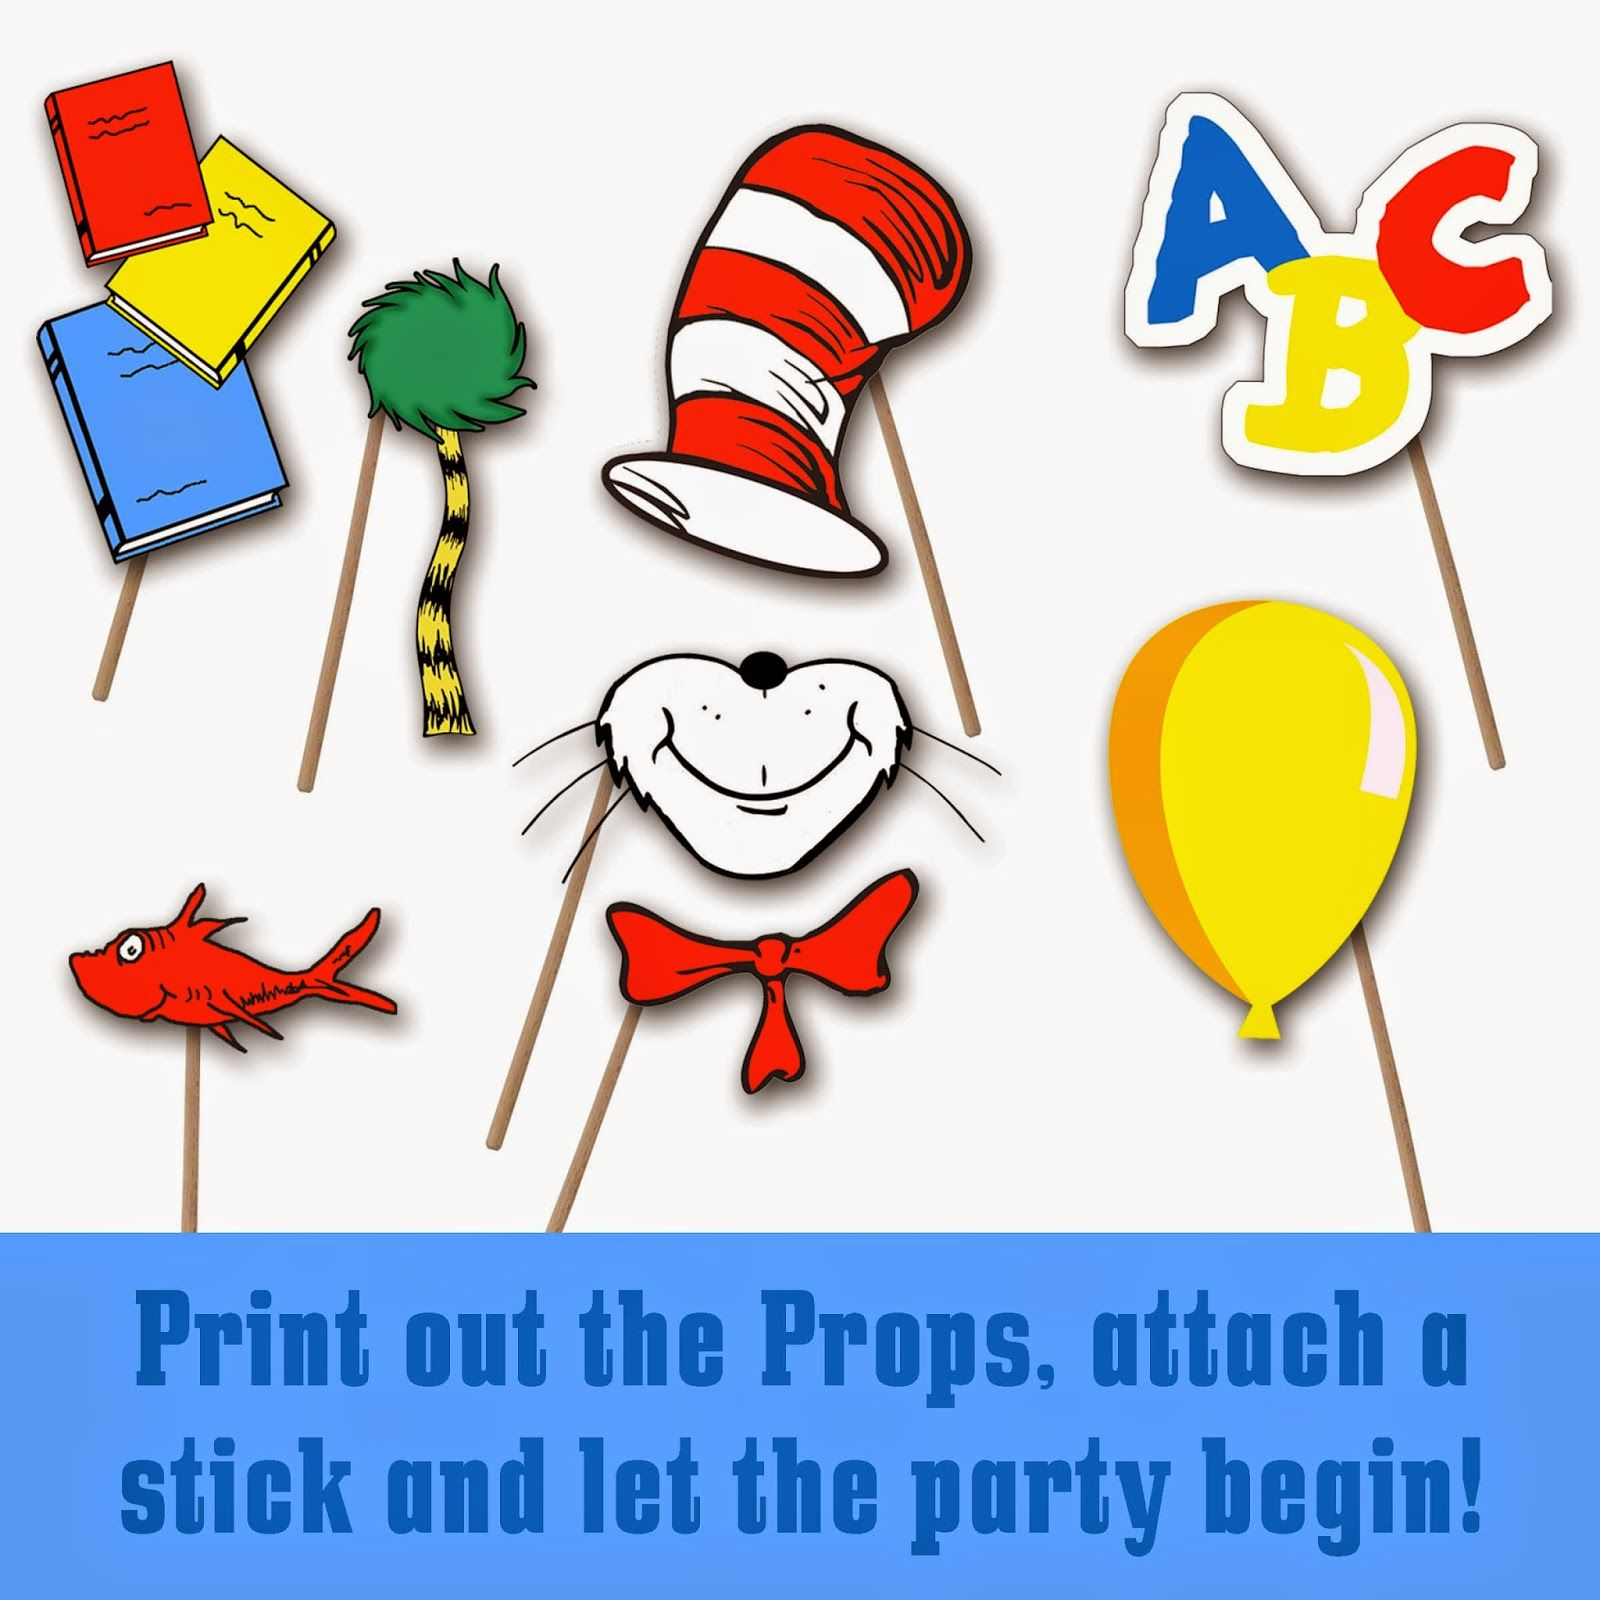 Dr. Seuss Photo Booth Printable Props | School-Dr. Seuss | Dr Seuss - Free Printable Dr Seuss Photo Props